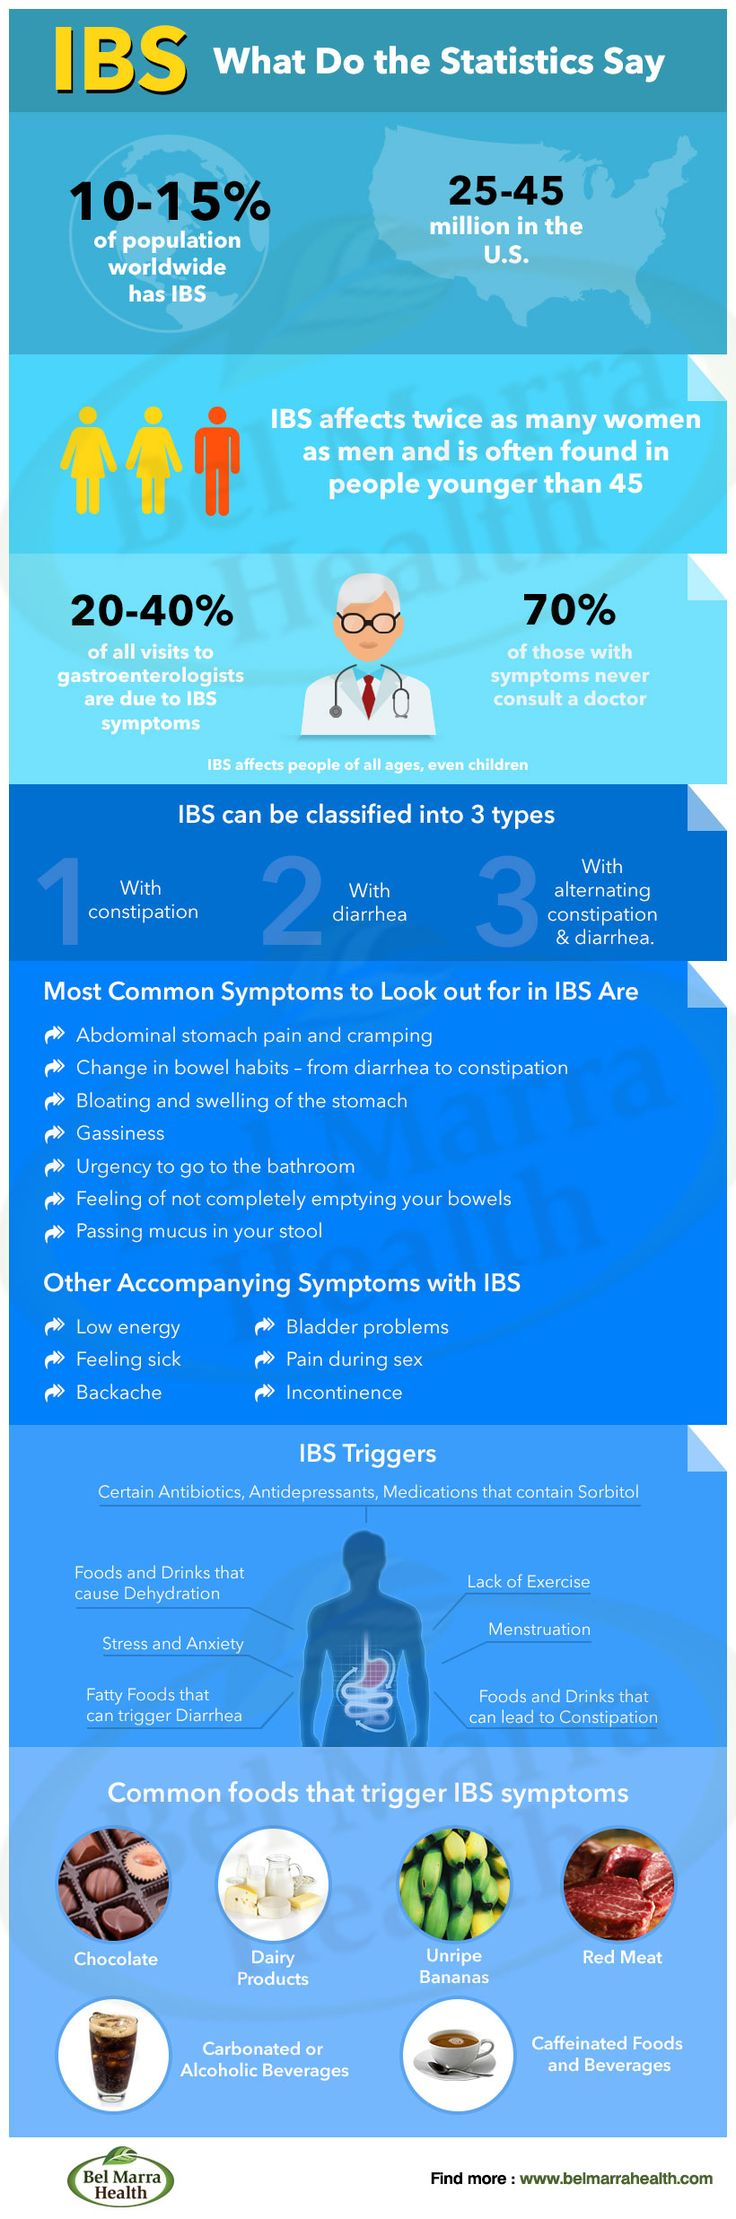 Irritable Bowel Syndrome (#IBS)- What do the Statistics Say